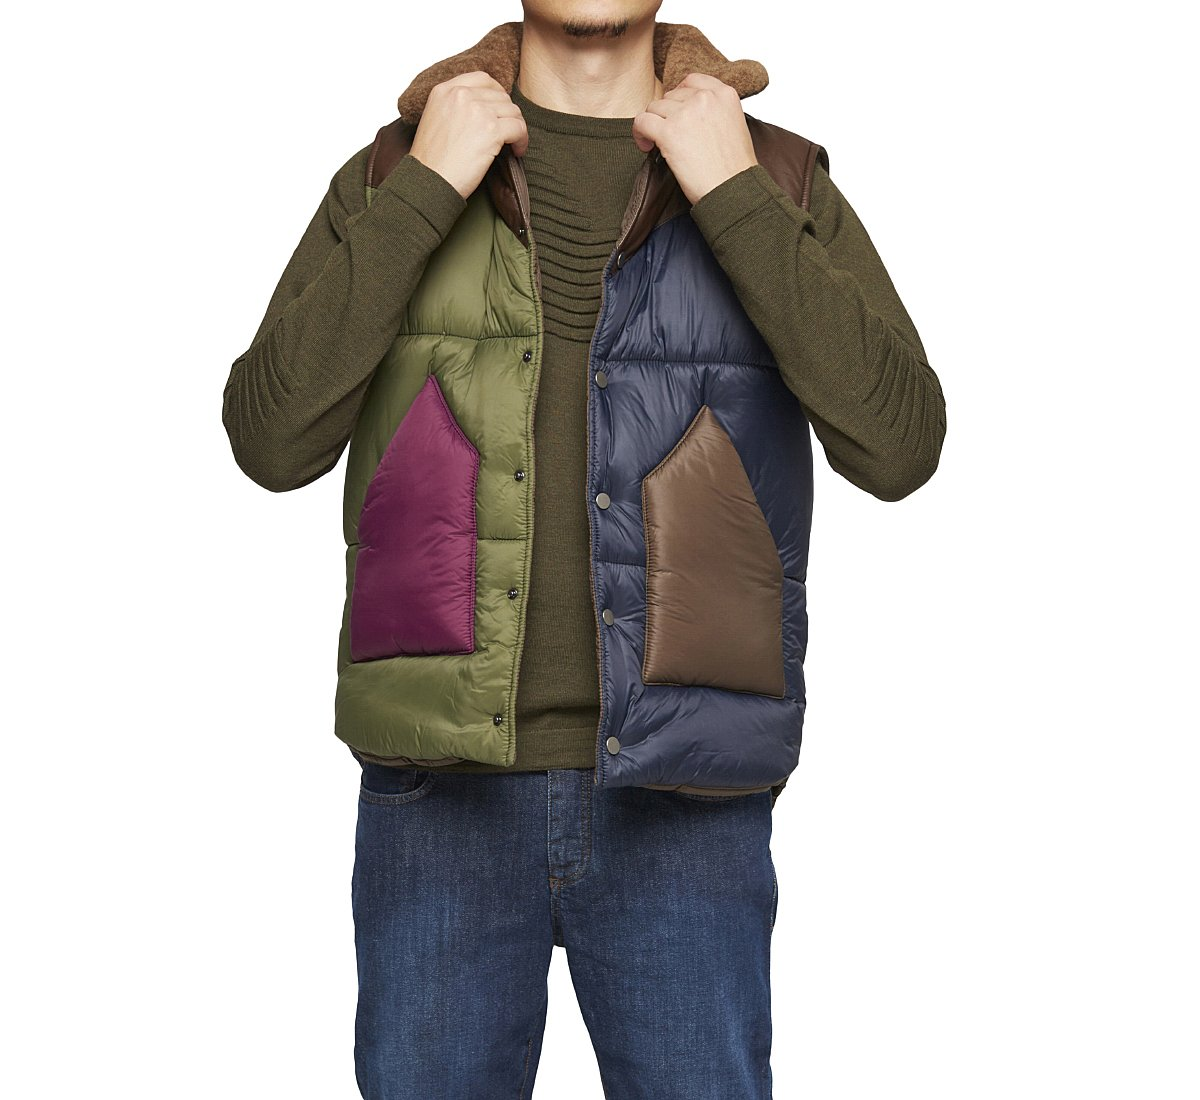 Padded fabric vest